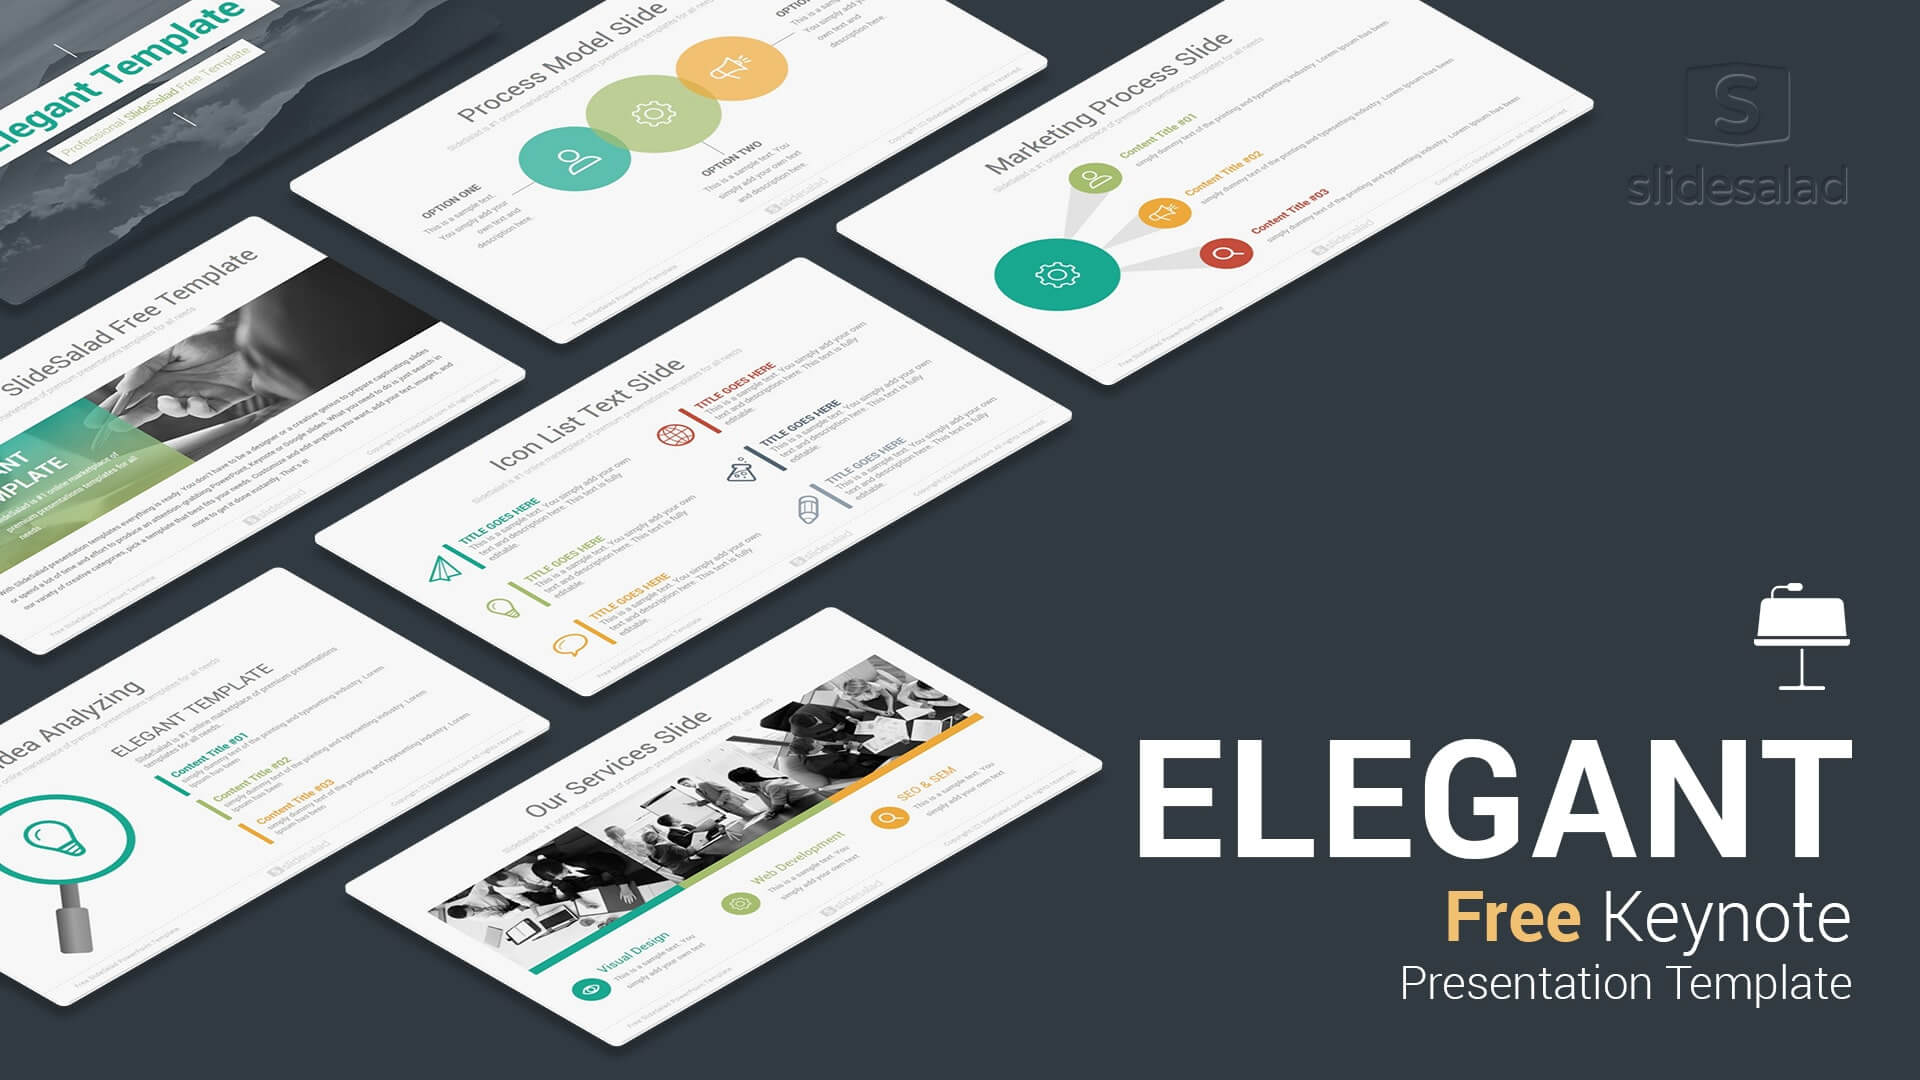 025 Brochure Templates Free Download For Ppt Elegant Keynote With Keynote Brochure Template